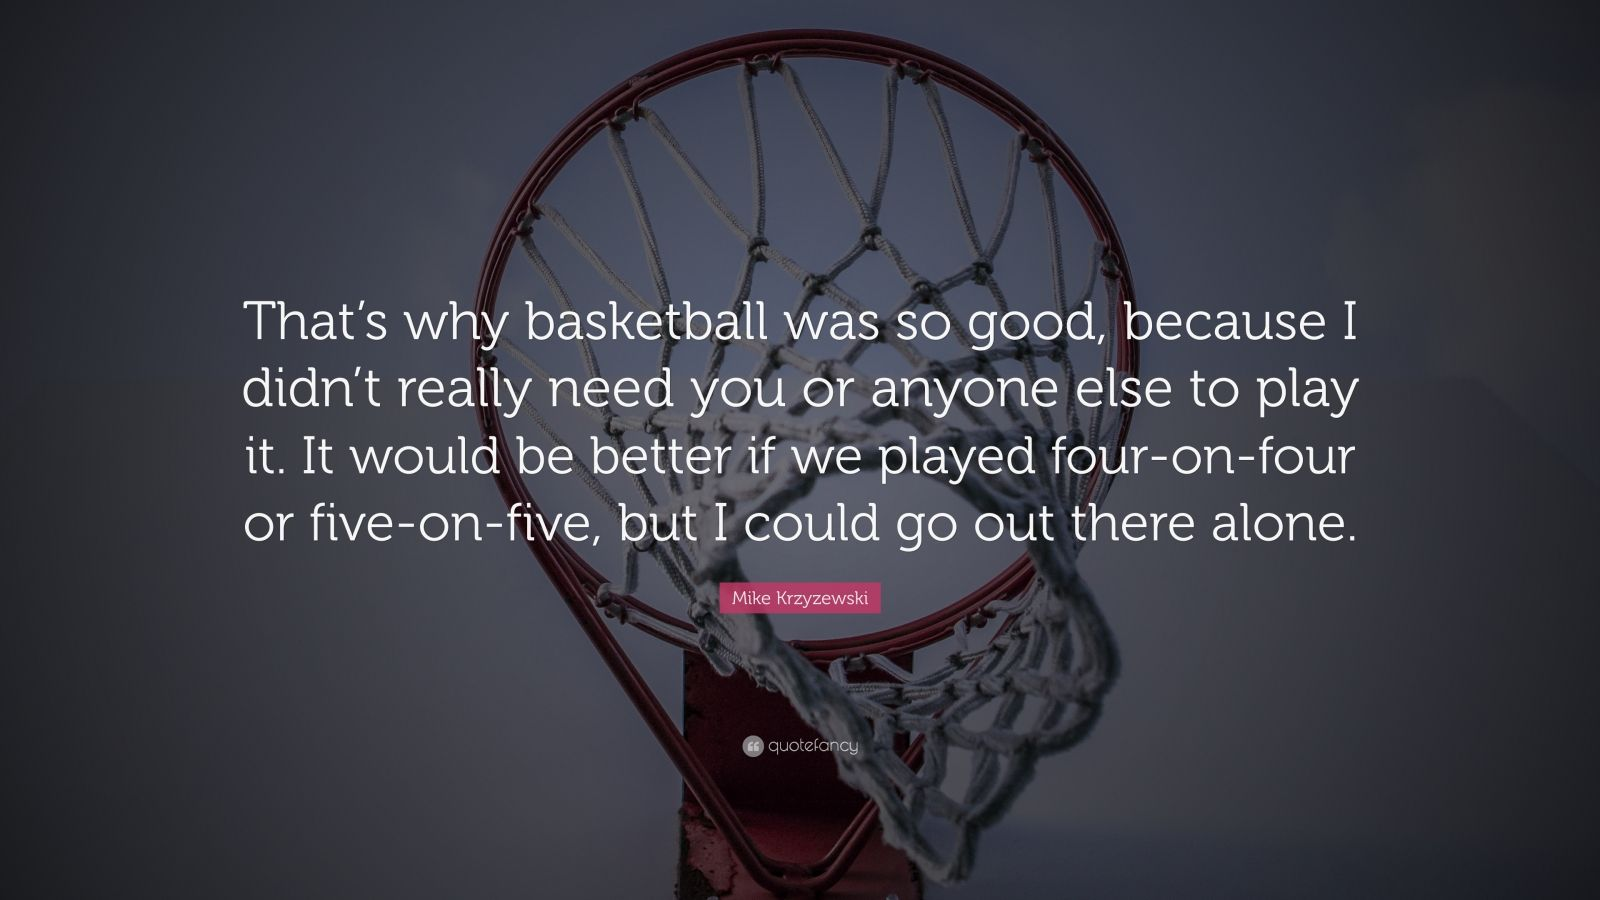 "Mike Krzyzewski Quote: ""That's why basketball was so good, because I didn't really need you or anyone else to play it. It would be better if we played four-on-four or five-on-five, but I could go out there alone."""